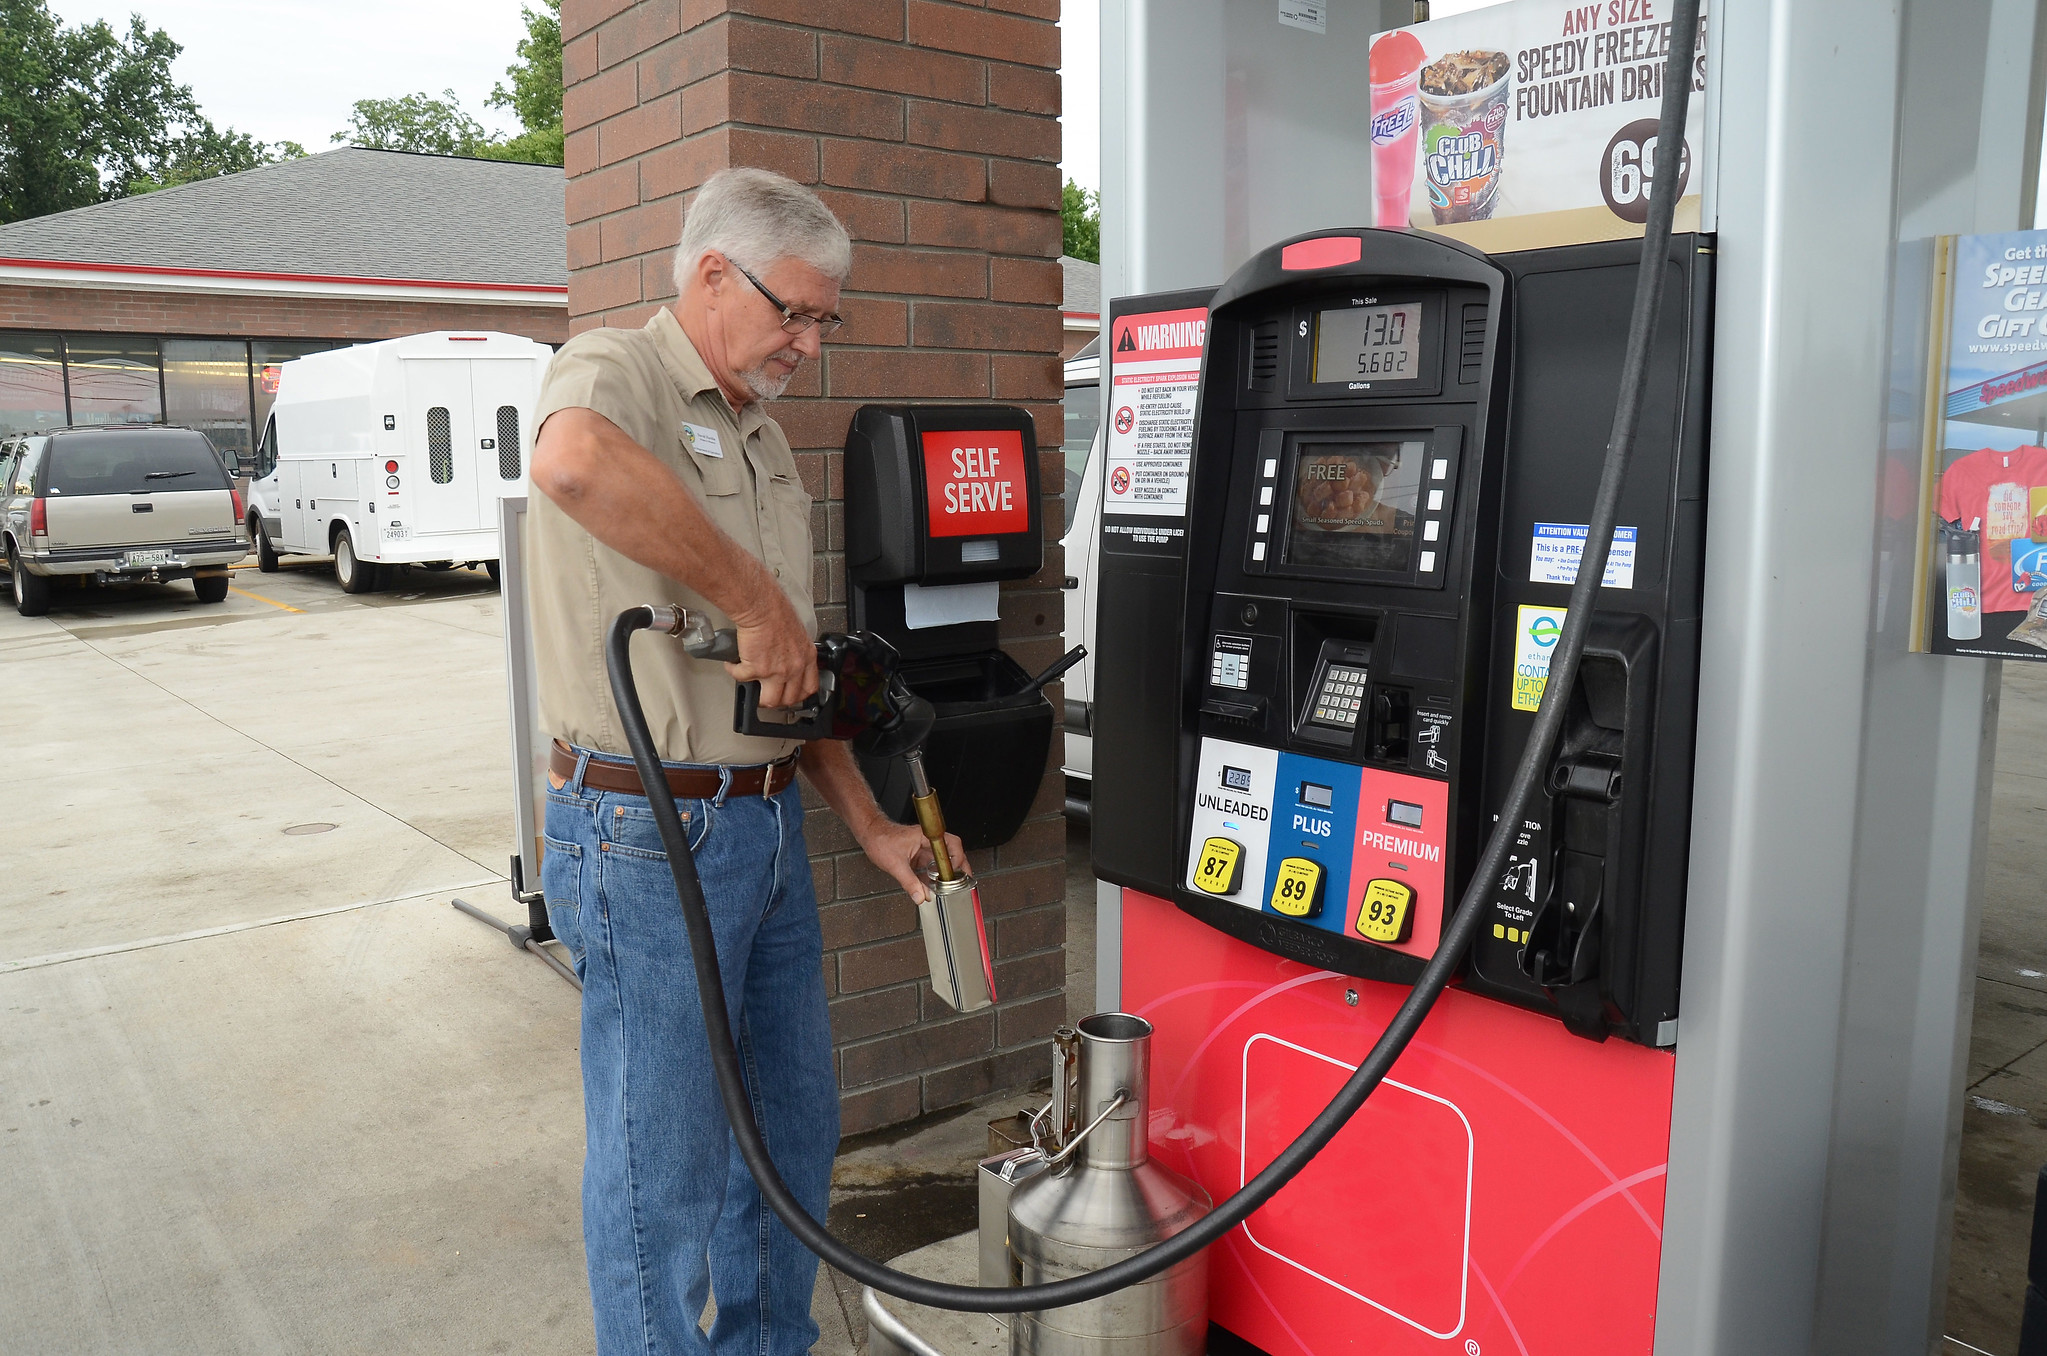 When we fill up at the pump, we expect to get good, clean fuel. But why do we trust what we put in our car's tank? For 30 years, it's been because the Tennessee Department of Agriculture (TDA) Fuel Quality section has worked...